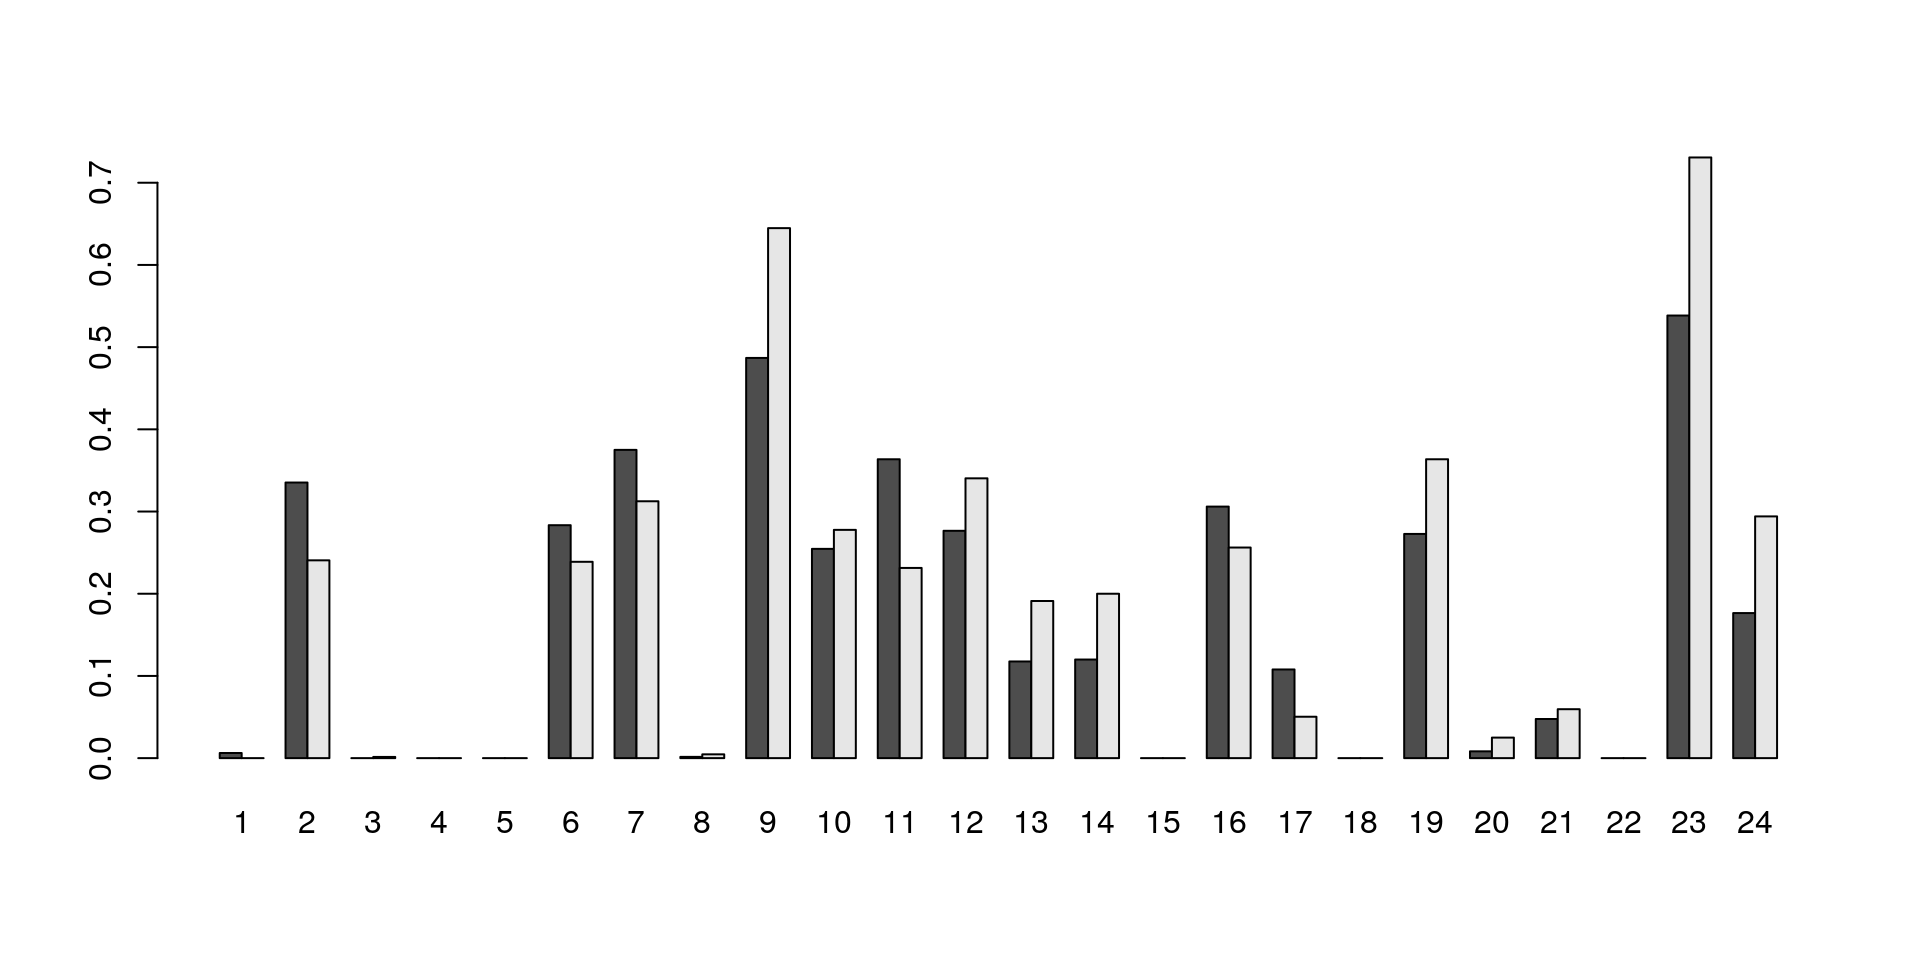 Proportion of cells in each cluster that express two or more sequences of the TCR $\alpha$ or $\beta$-chains.